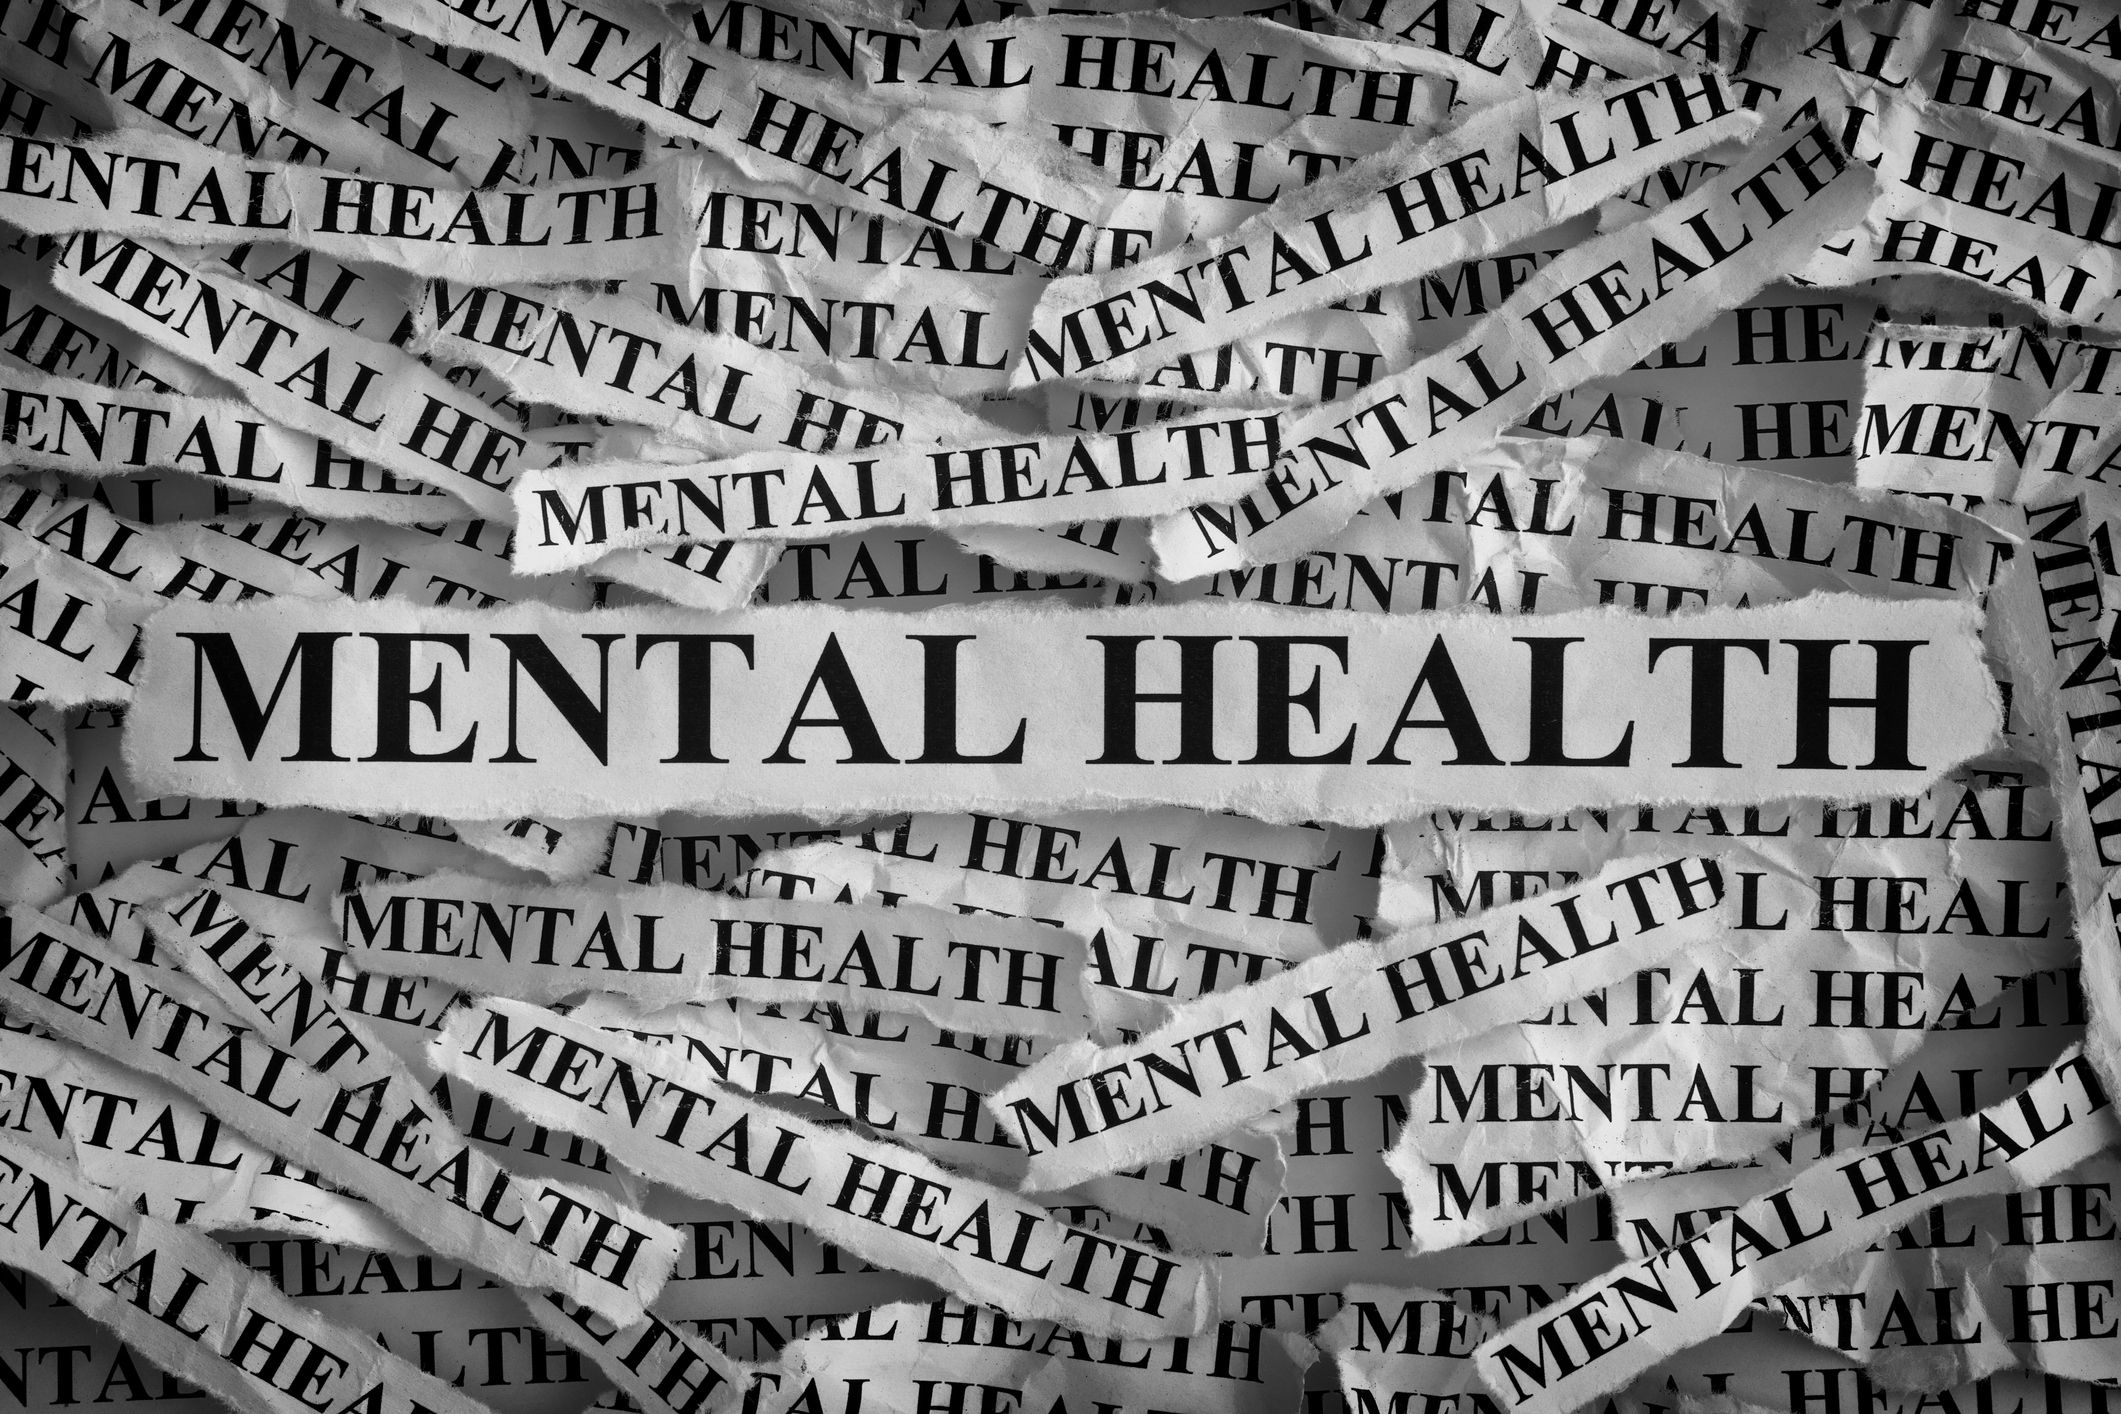 The Impact Of Mental Illness Stigma On Seeking And Participating In